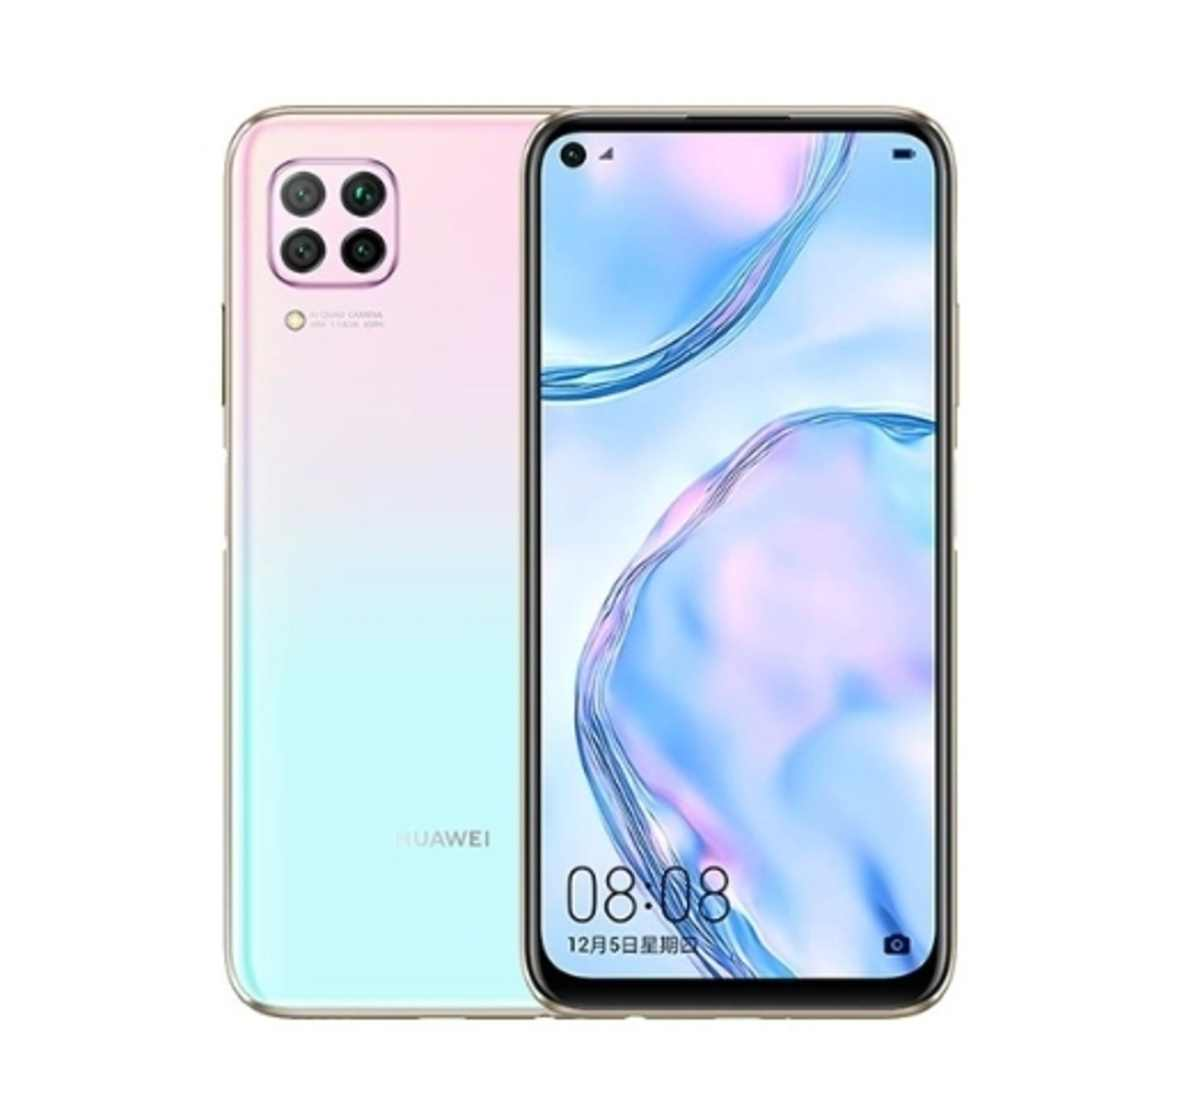 Huawei nova 6 SE, price, specs and image in Nigeria, specs and price of huawei nova 6 SE in Nigeria, Huawei nova 6 SE price in Nigeria